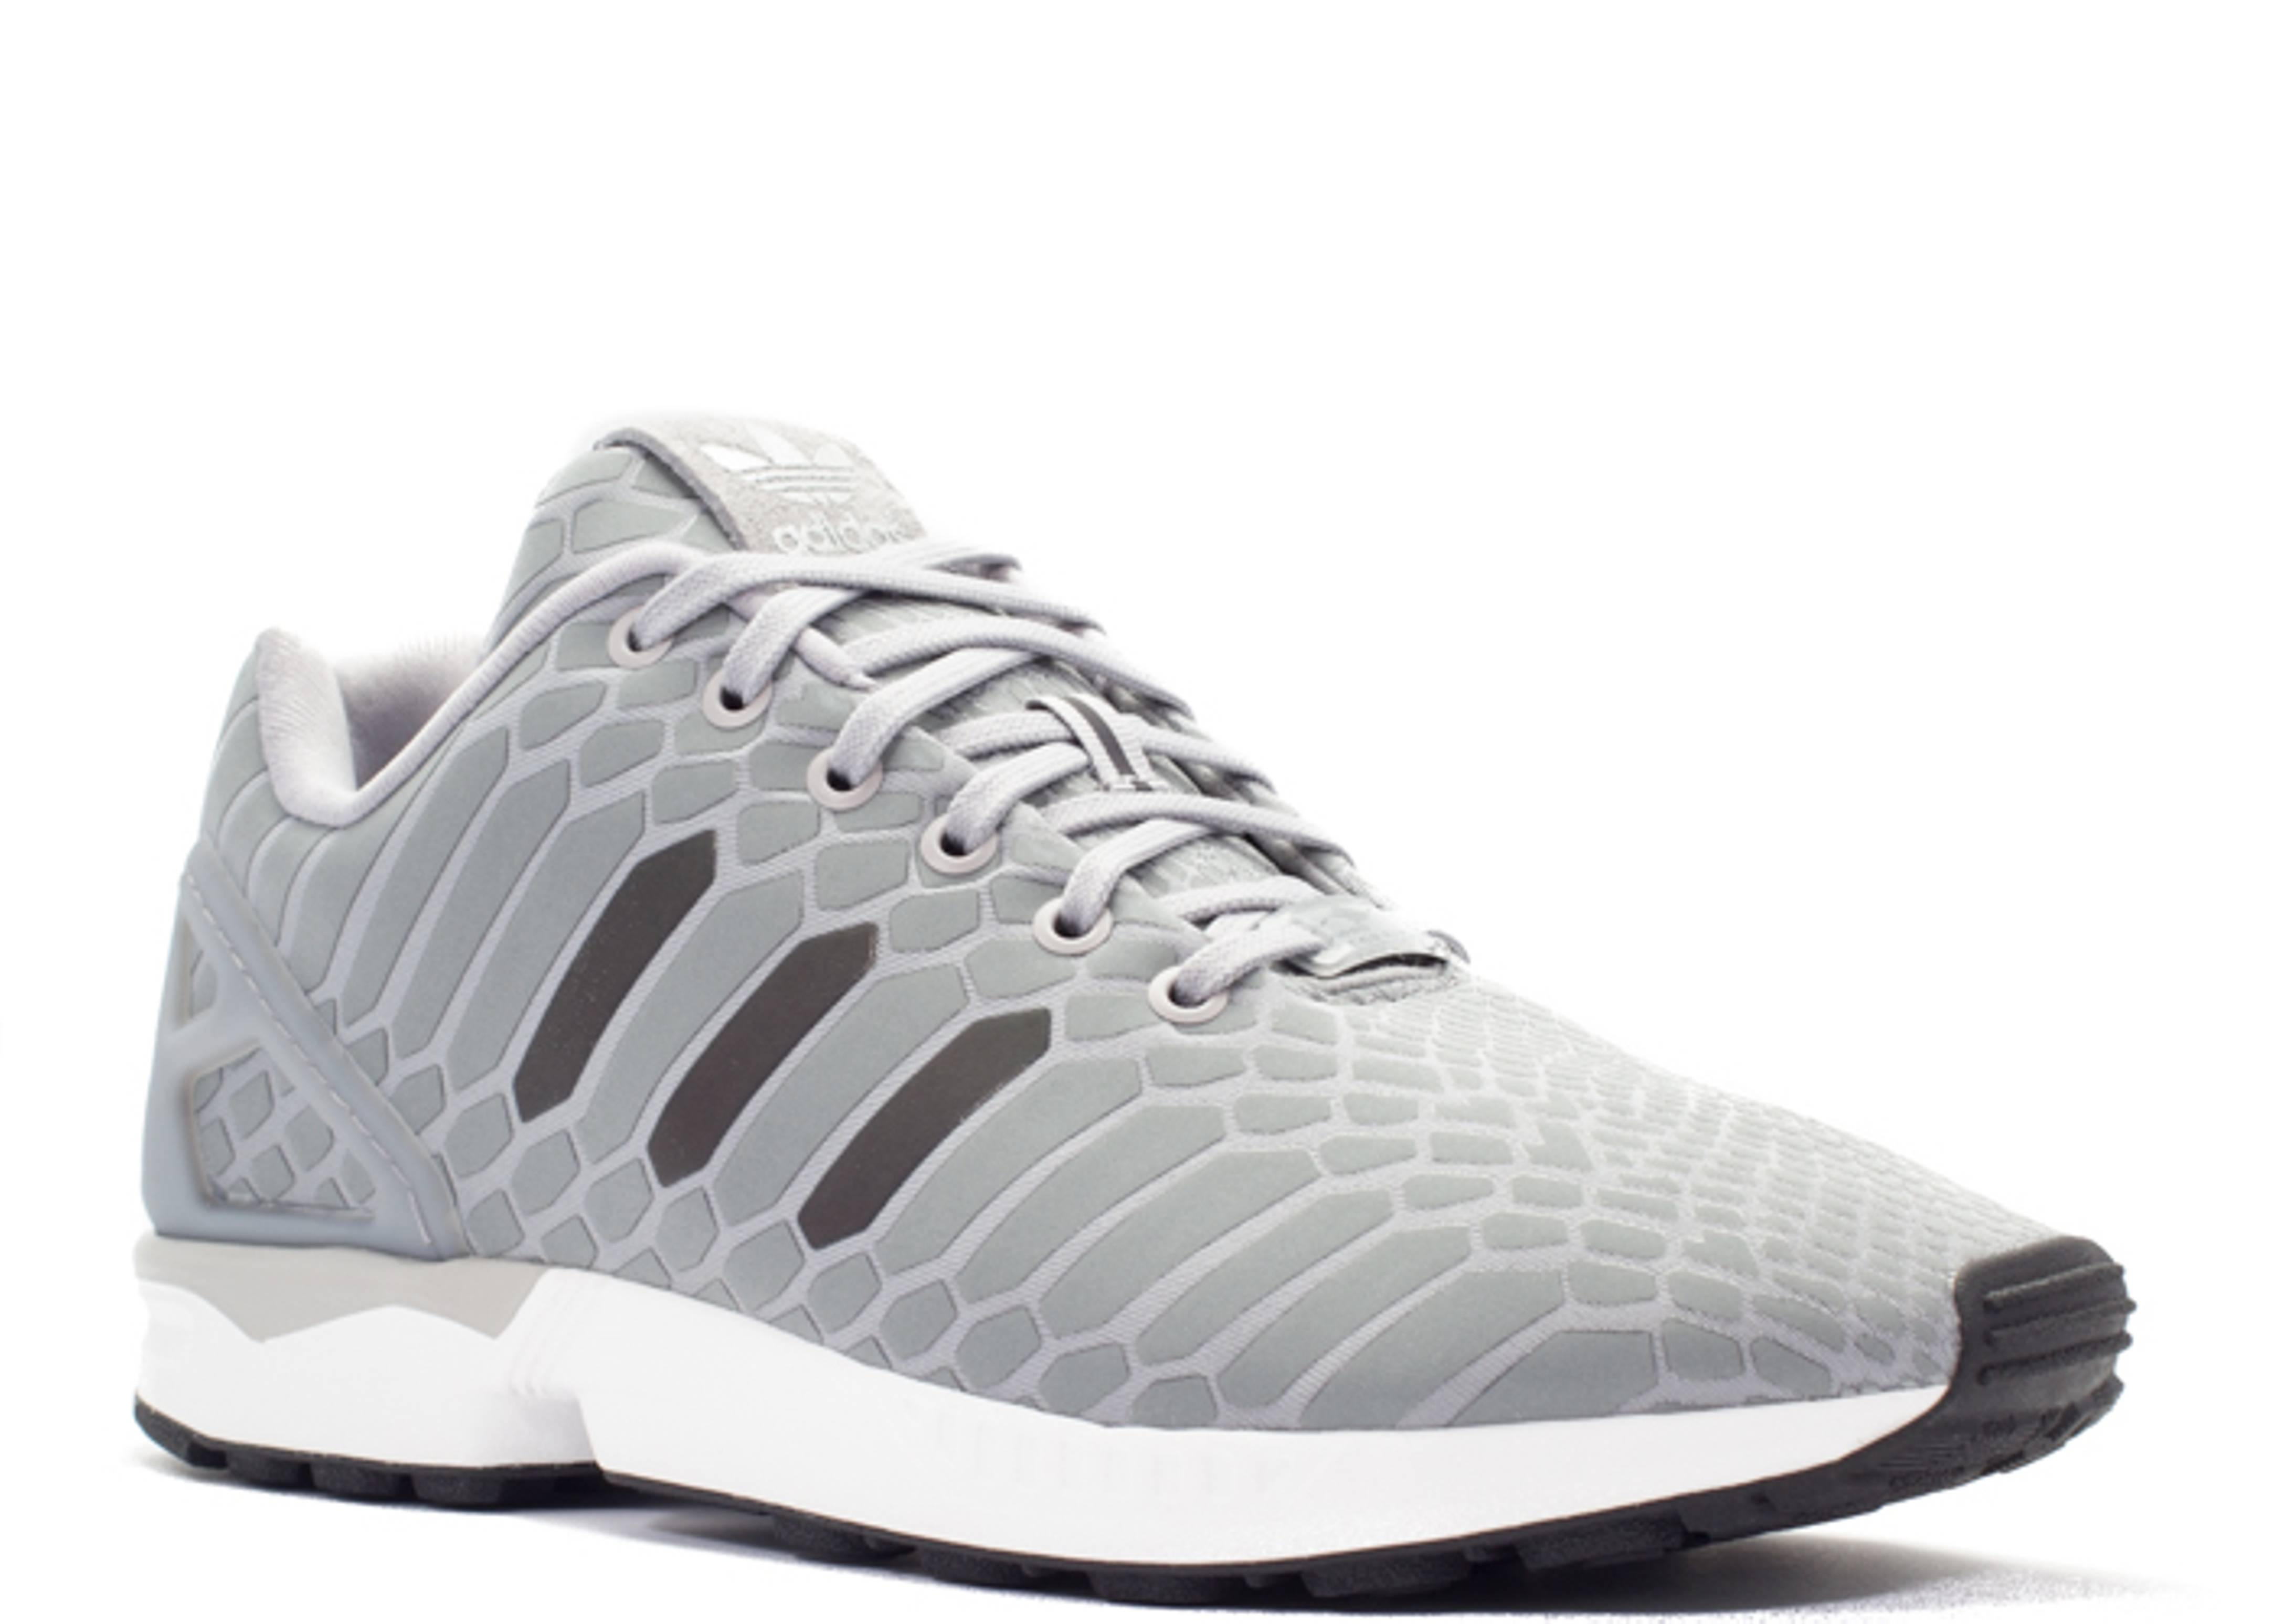 reputable site 046f6 a2065 Zx Flux